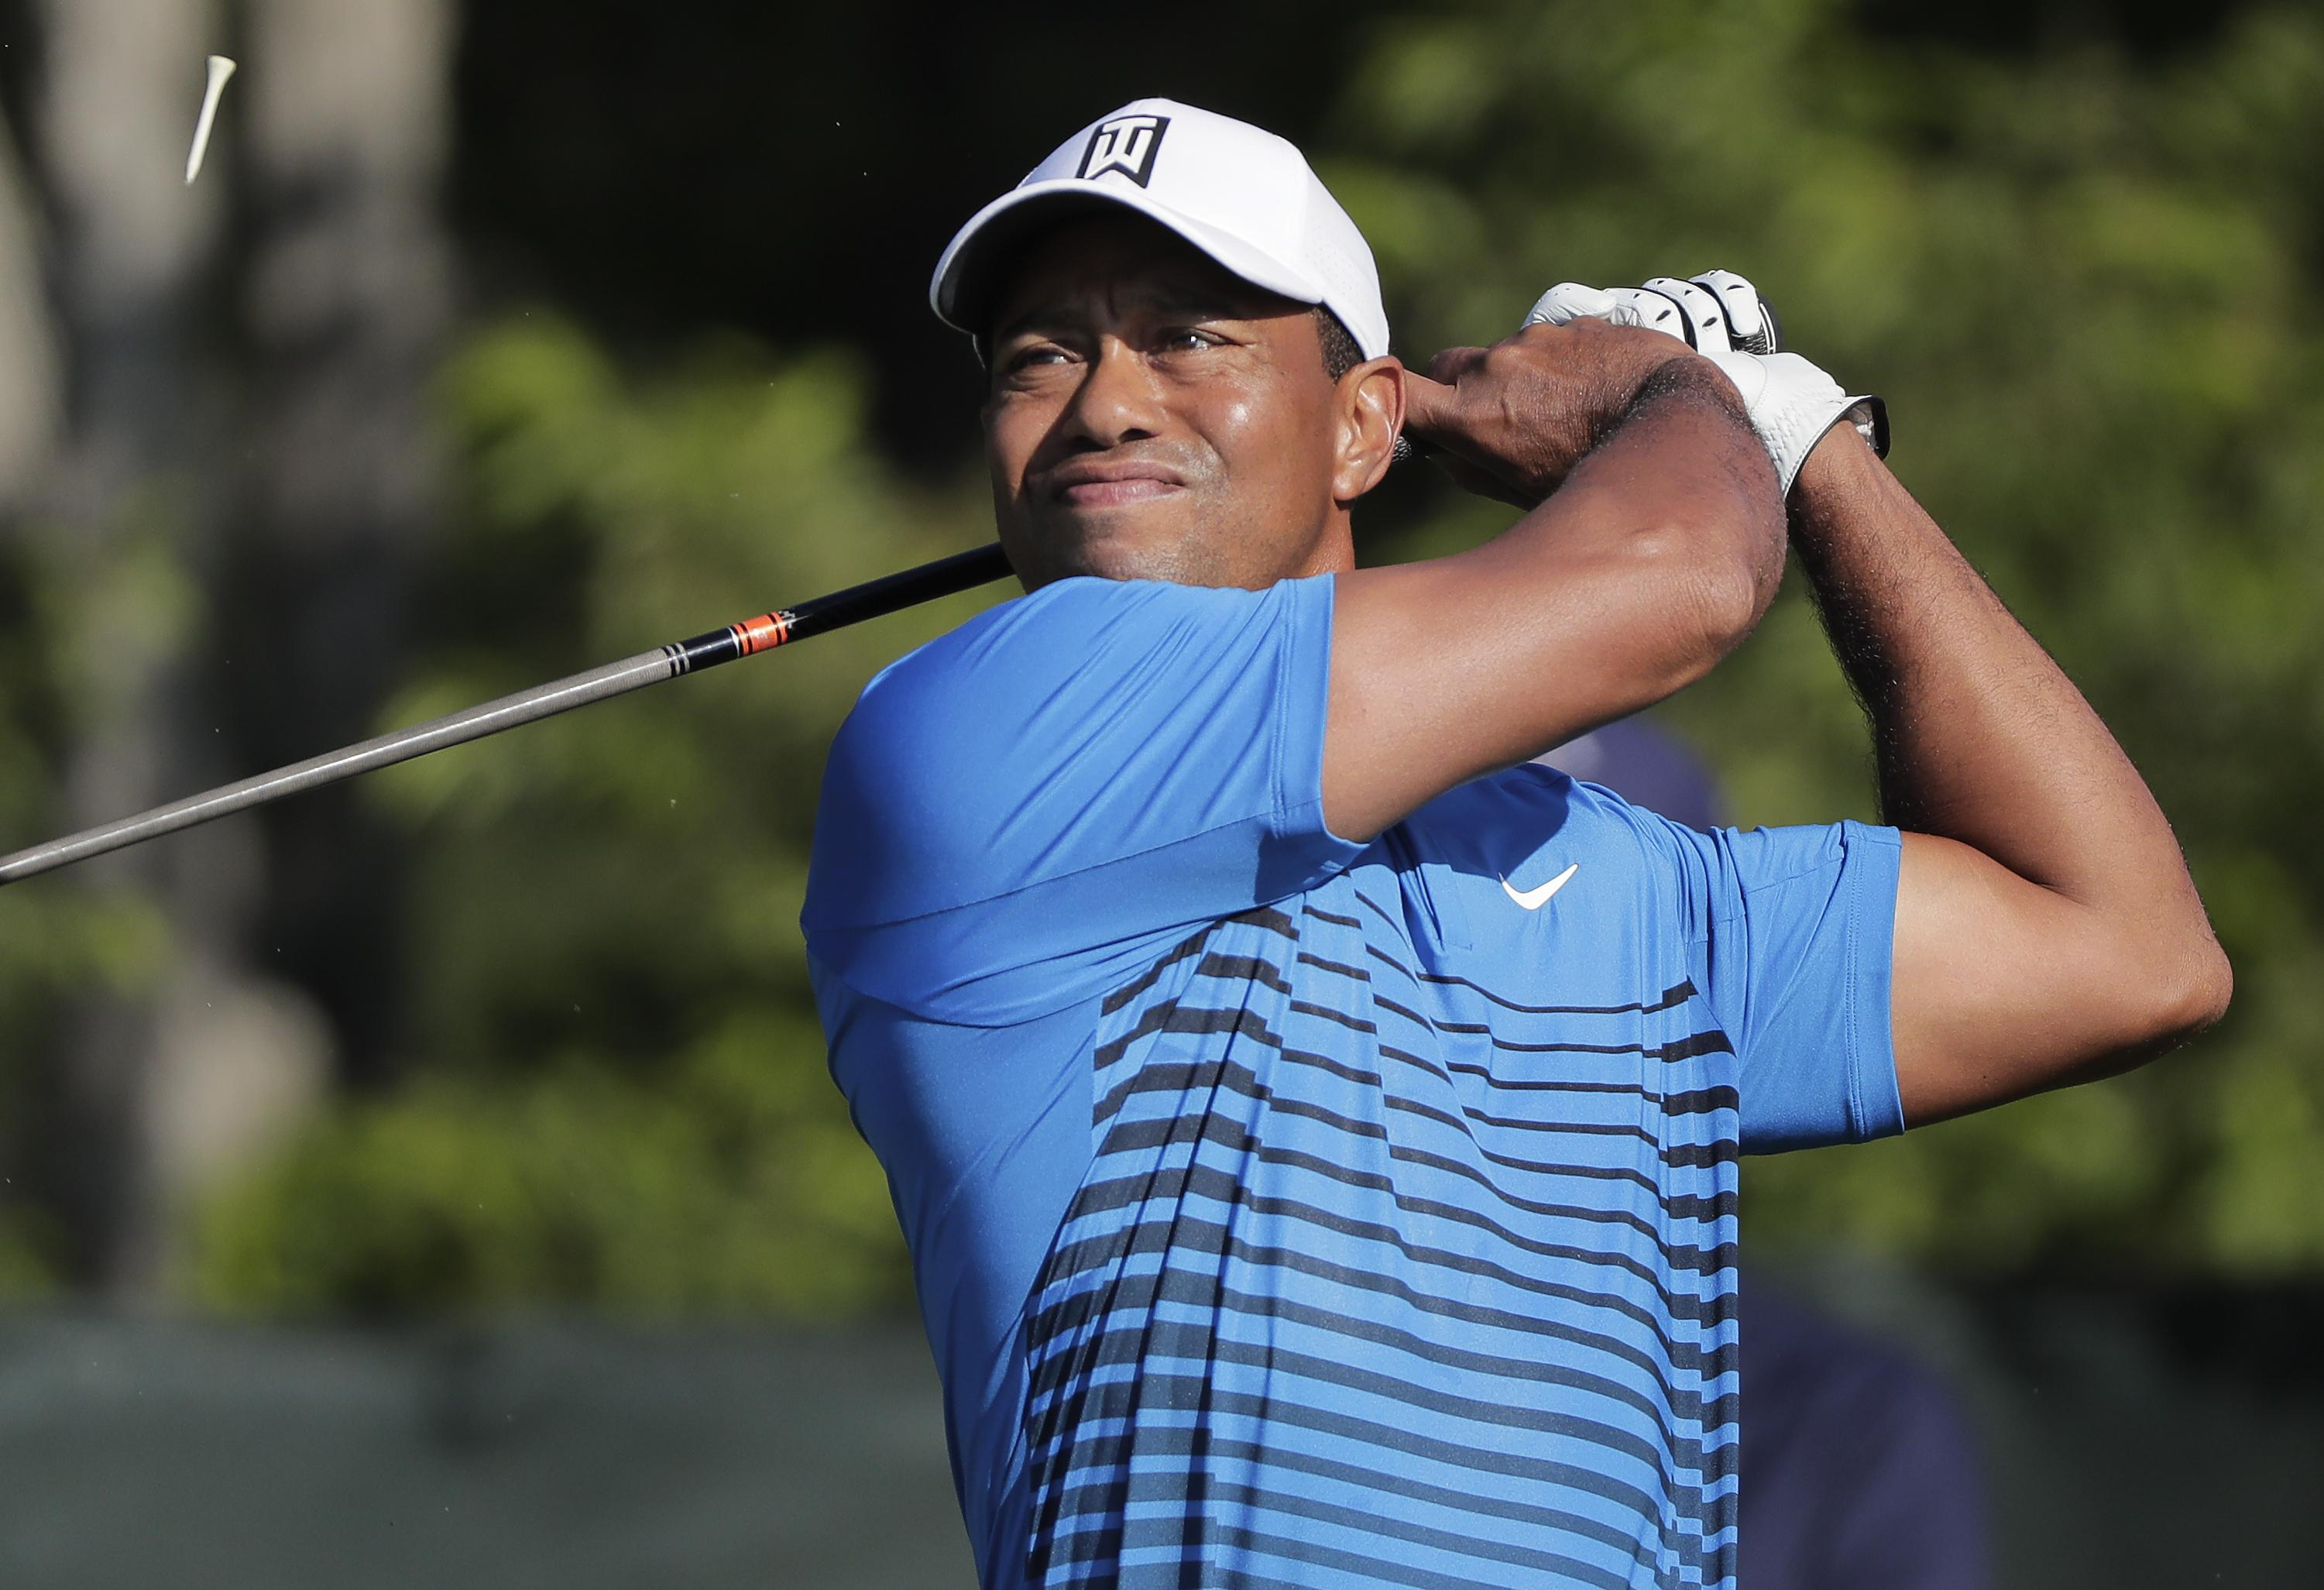 Woods teed off his preparations for this week's US Open in the practice round on Tuesday